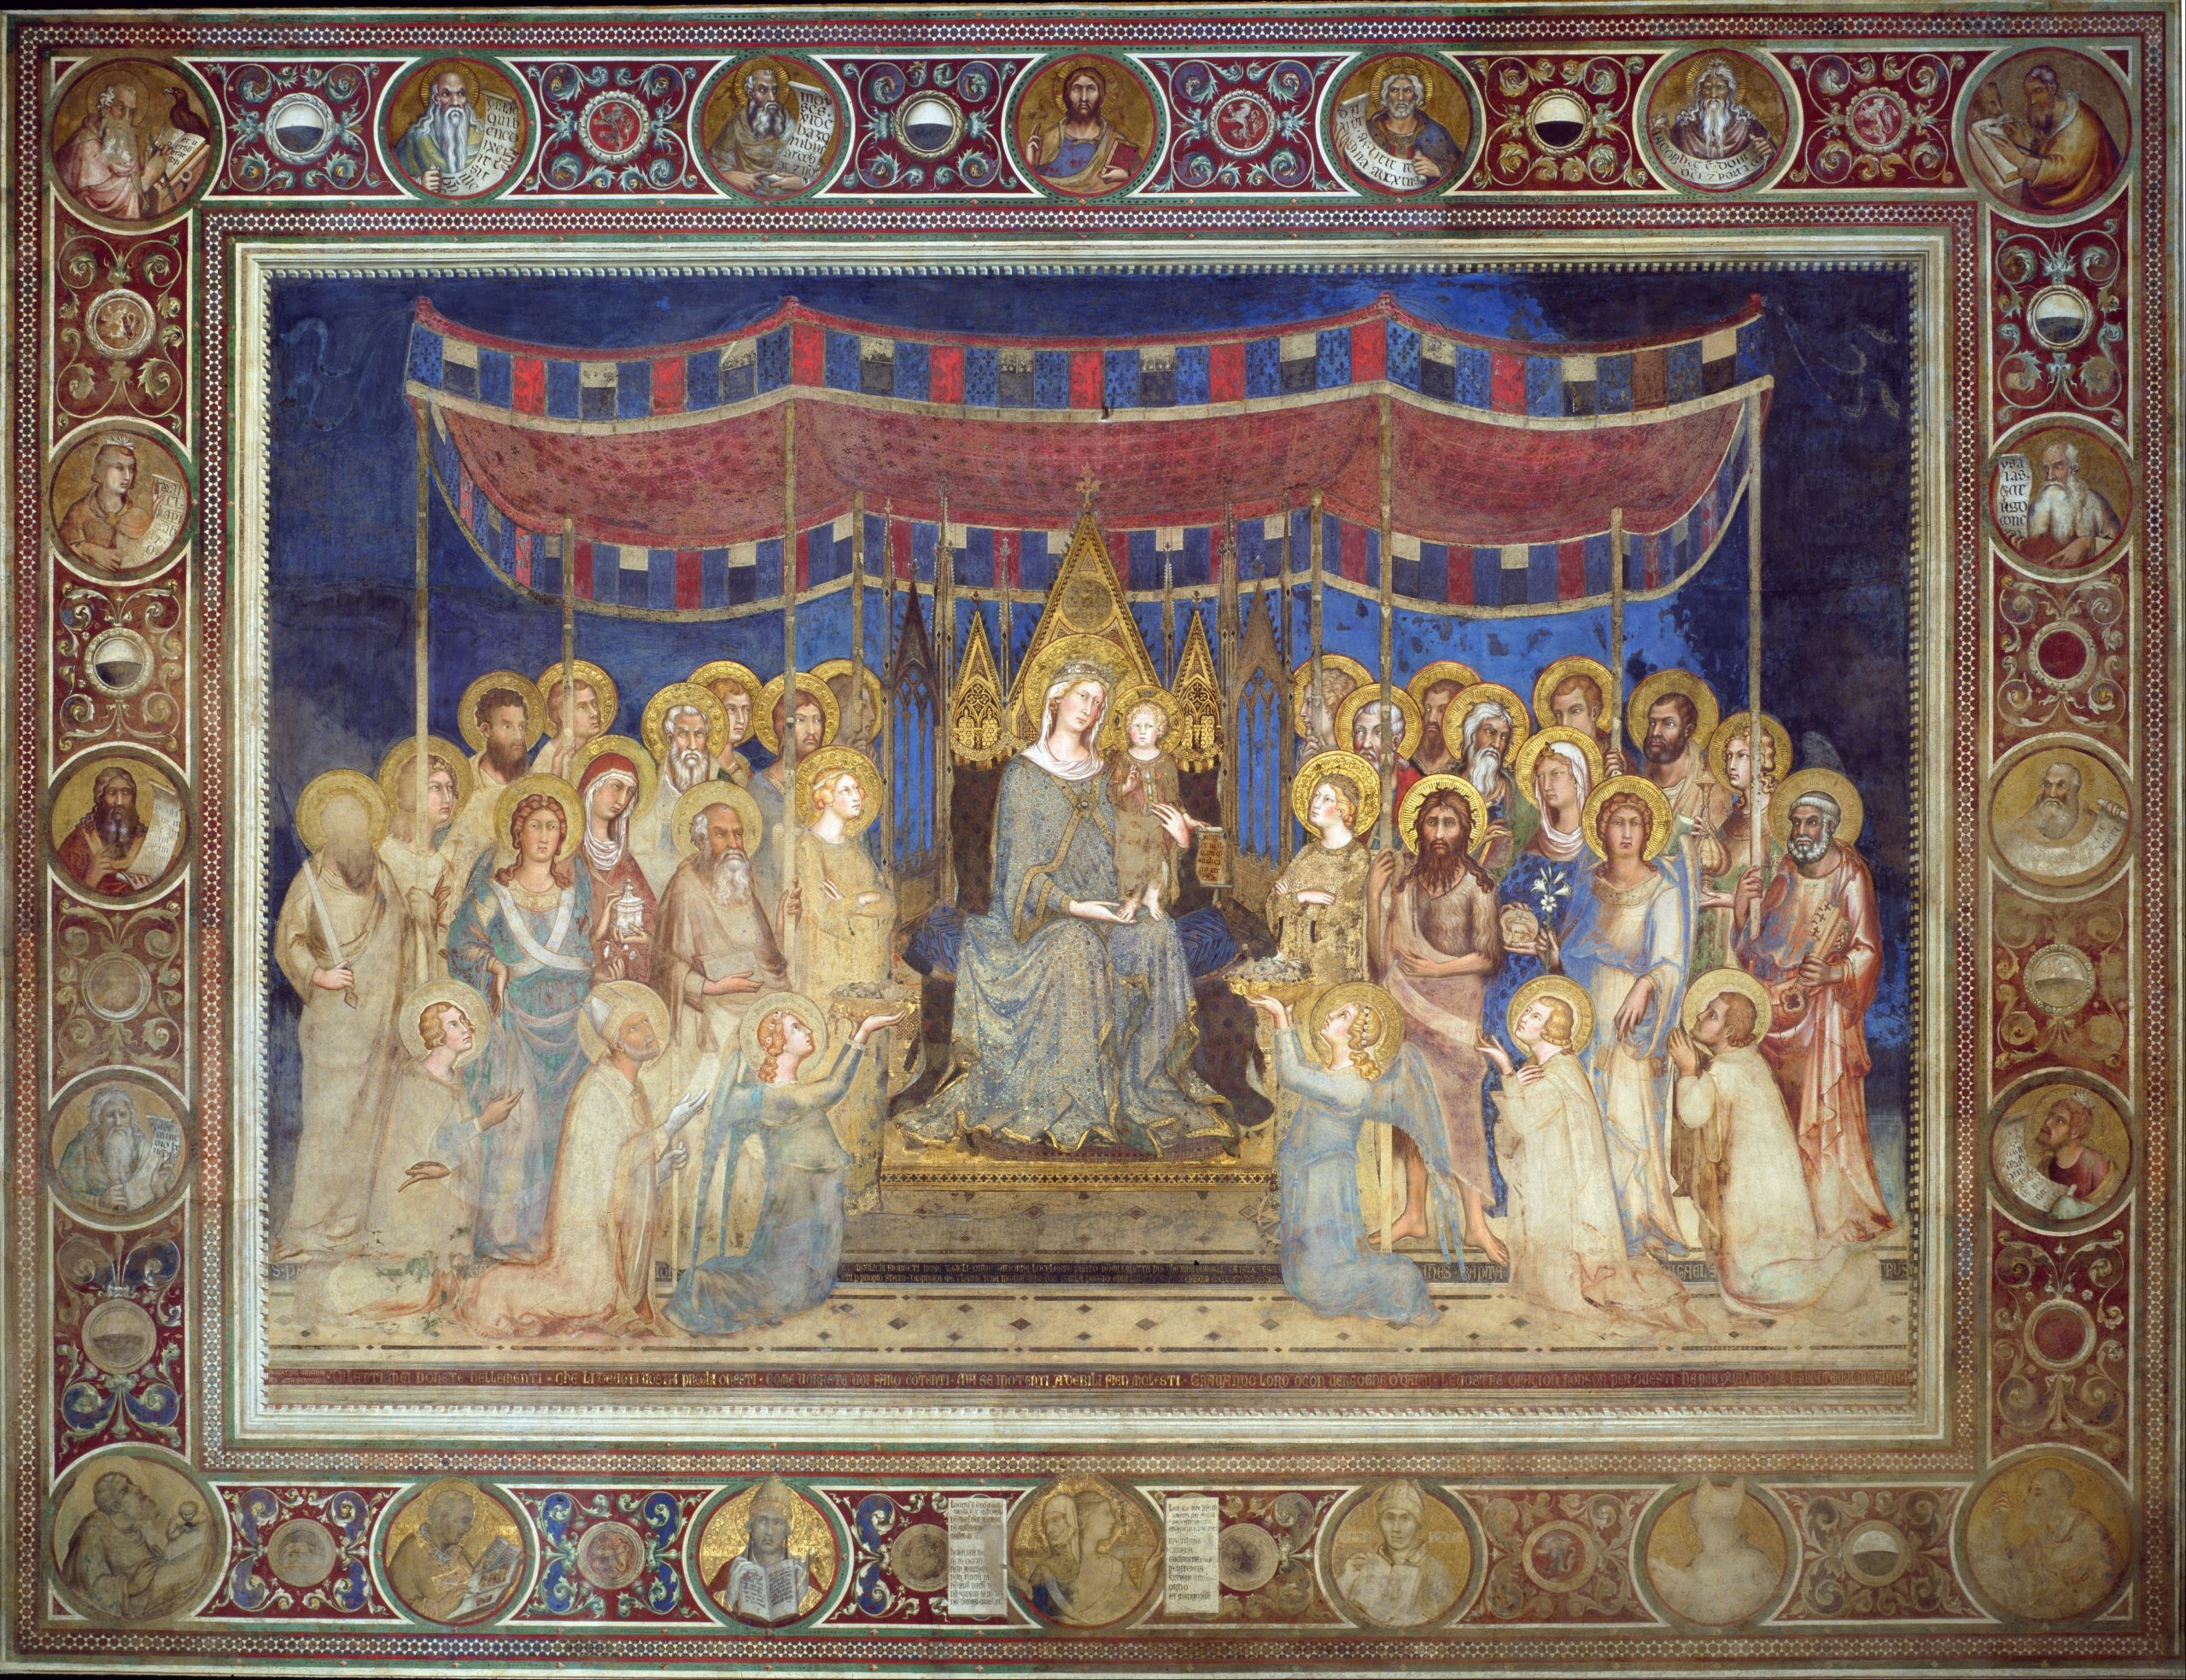 The Majesty - Enthroned Madonna with the child Jesus, whether or not accompanied with angels and saints.